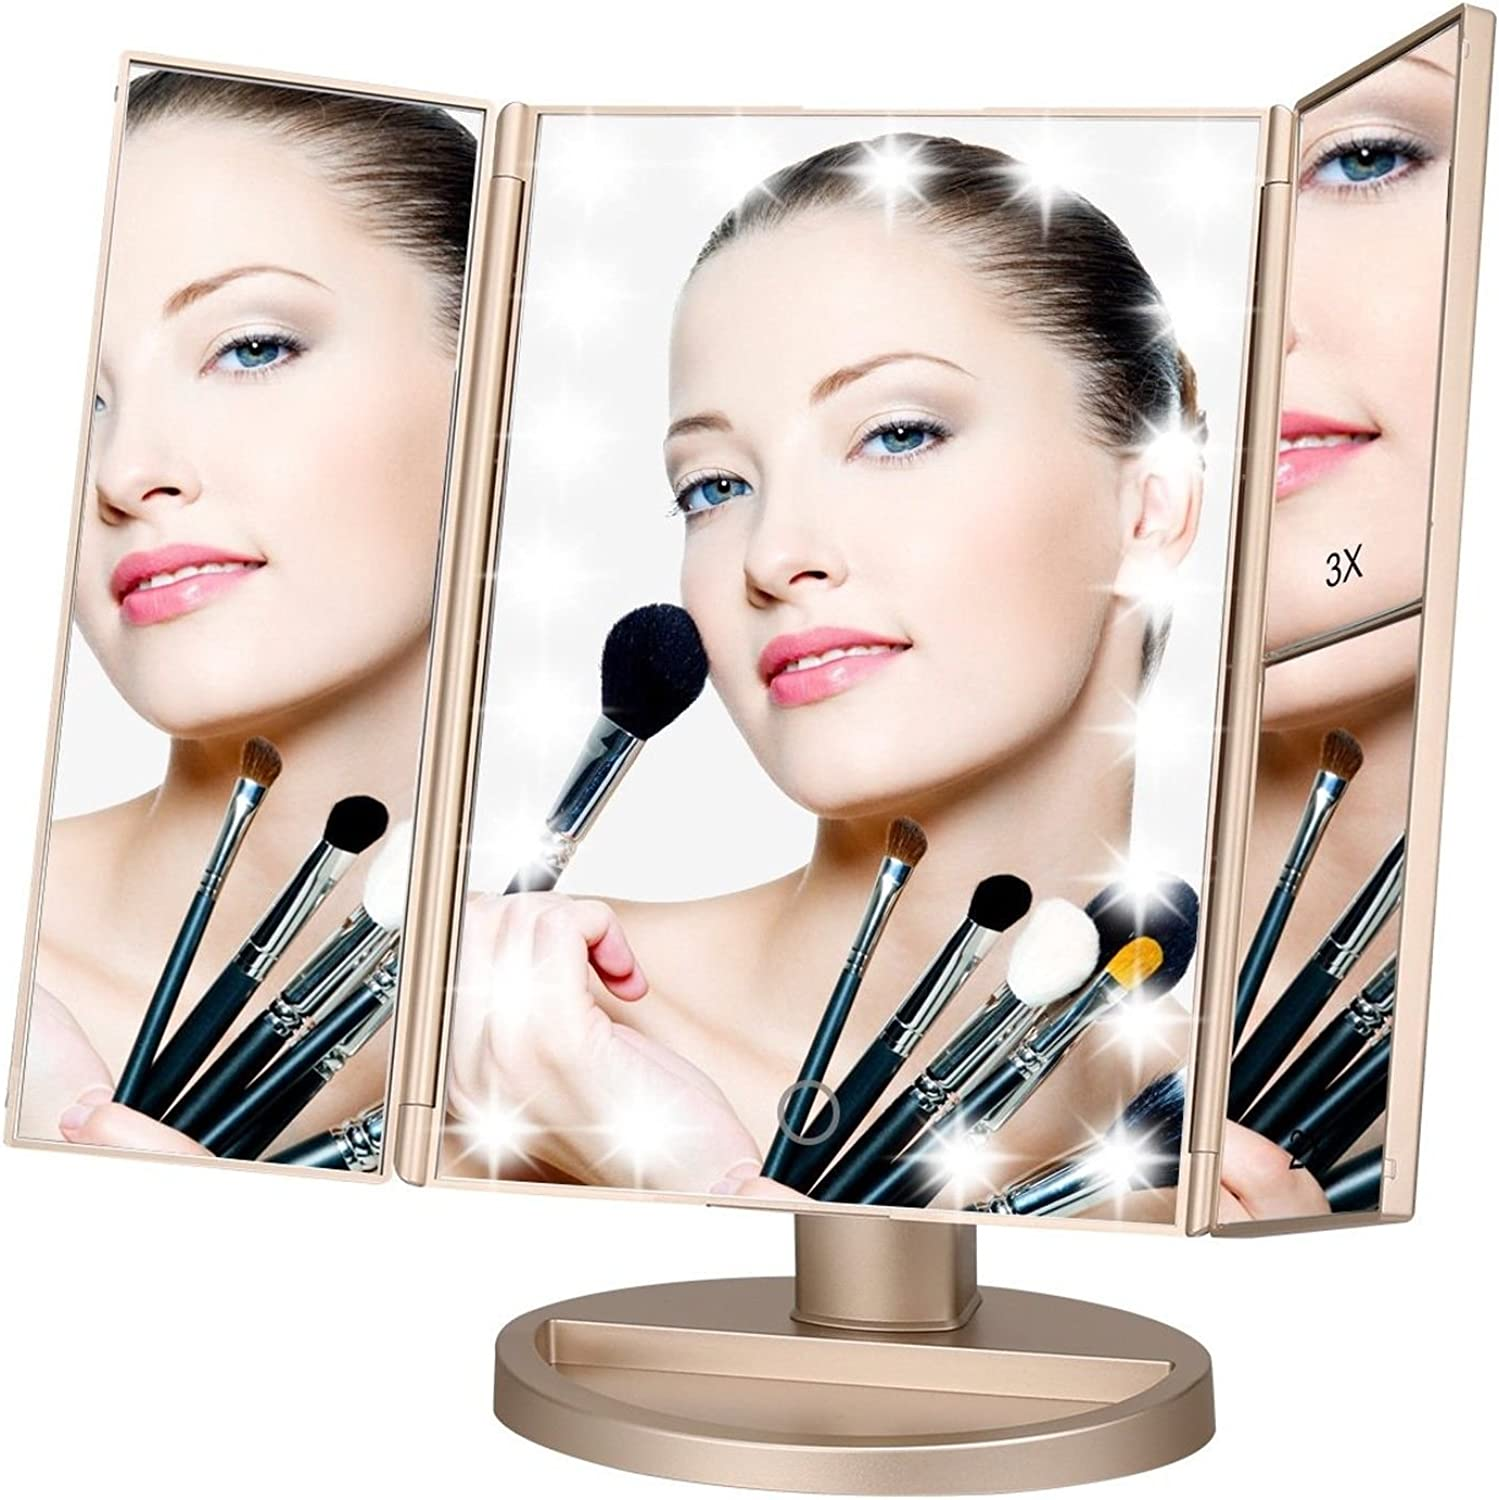 Makeup Mirror,Lighted Touch Screen LED Table -Three Panel